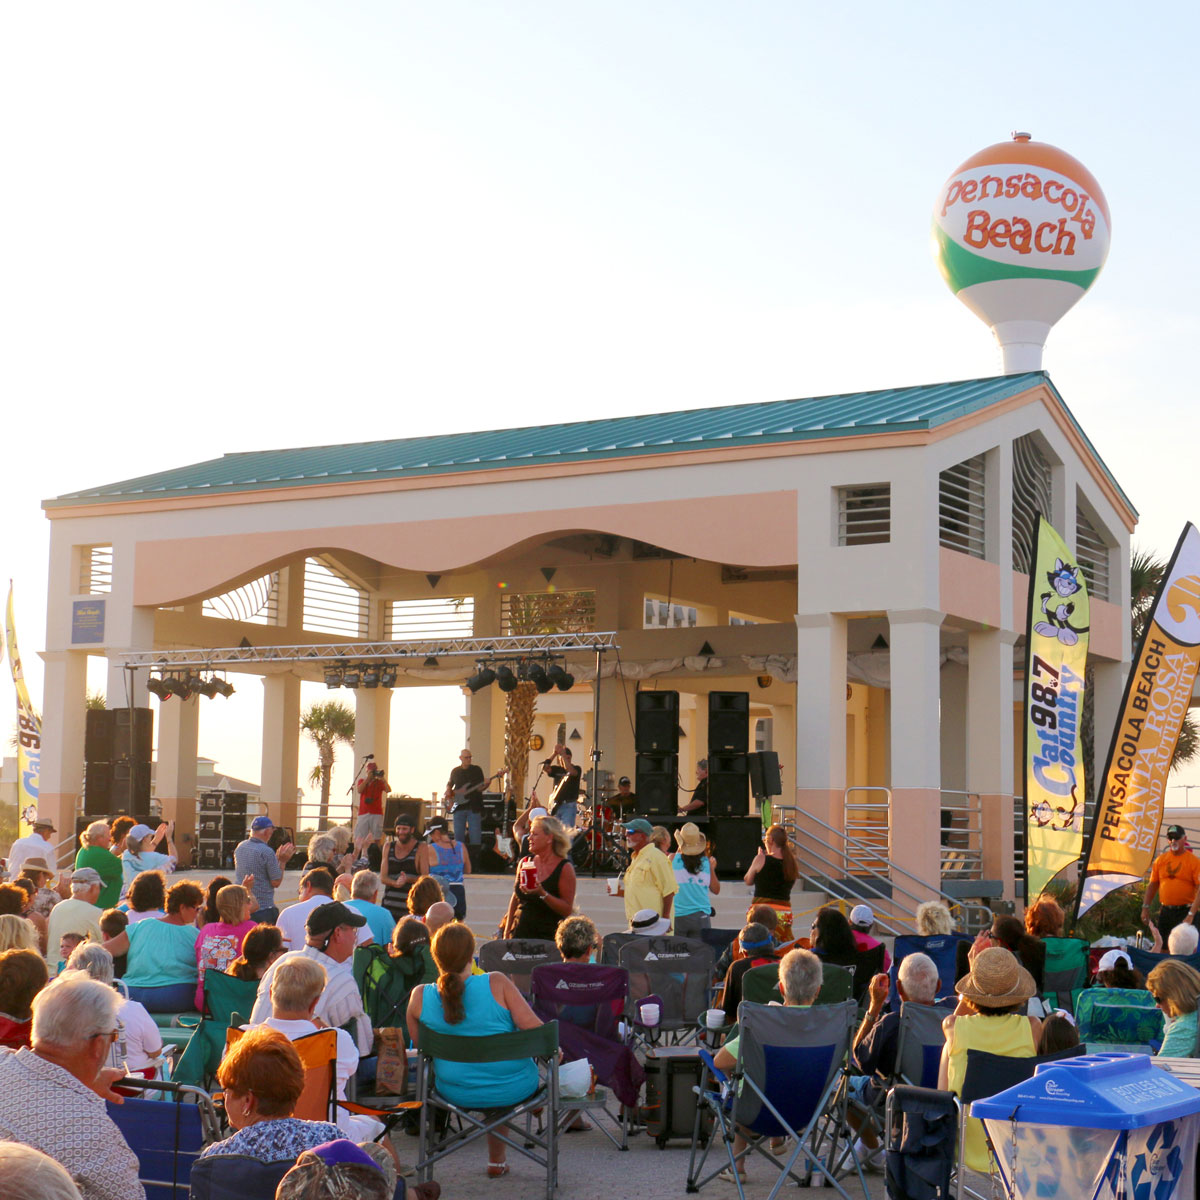 Bands on the Beach Pensacola Beach FL